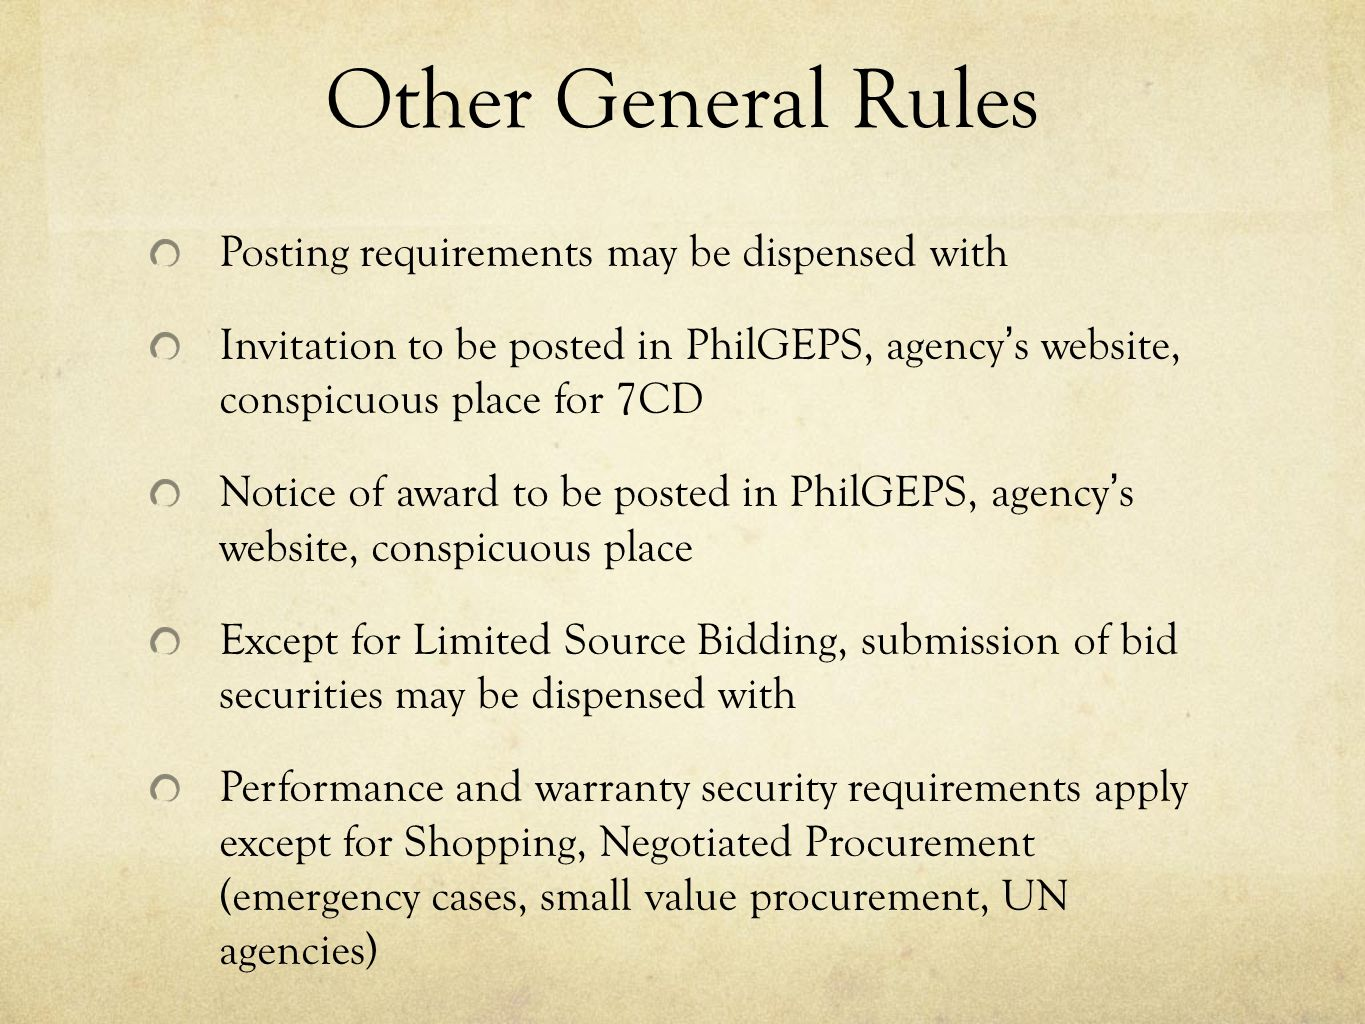 Other General Rules Posting requirements may be dispensed with Invitation to be posted in PhilGEPS, agencys website, conspicuous place for 7CD Notice of award to be posted in PhilGEPS, agencys website, conspicuous place Except for Limited Source Bidding, submission of bid securities may be dispensed with Performance and warranty security requirements apply except for Shopping, Negotiated Procurement (emergency cases, small value procurement, UN agencies)